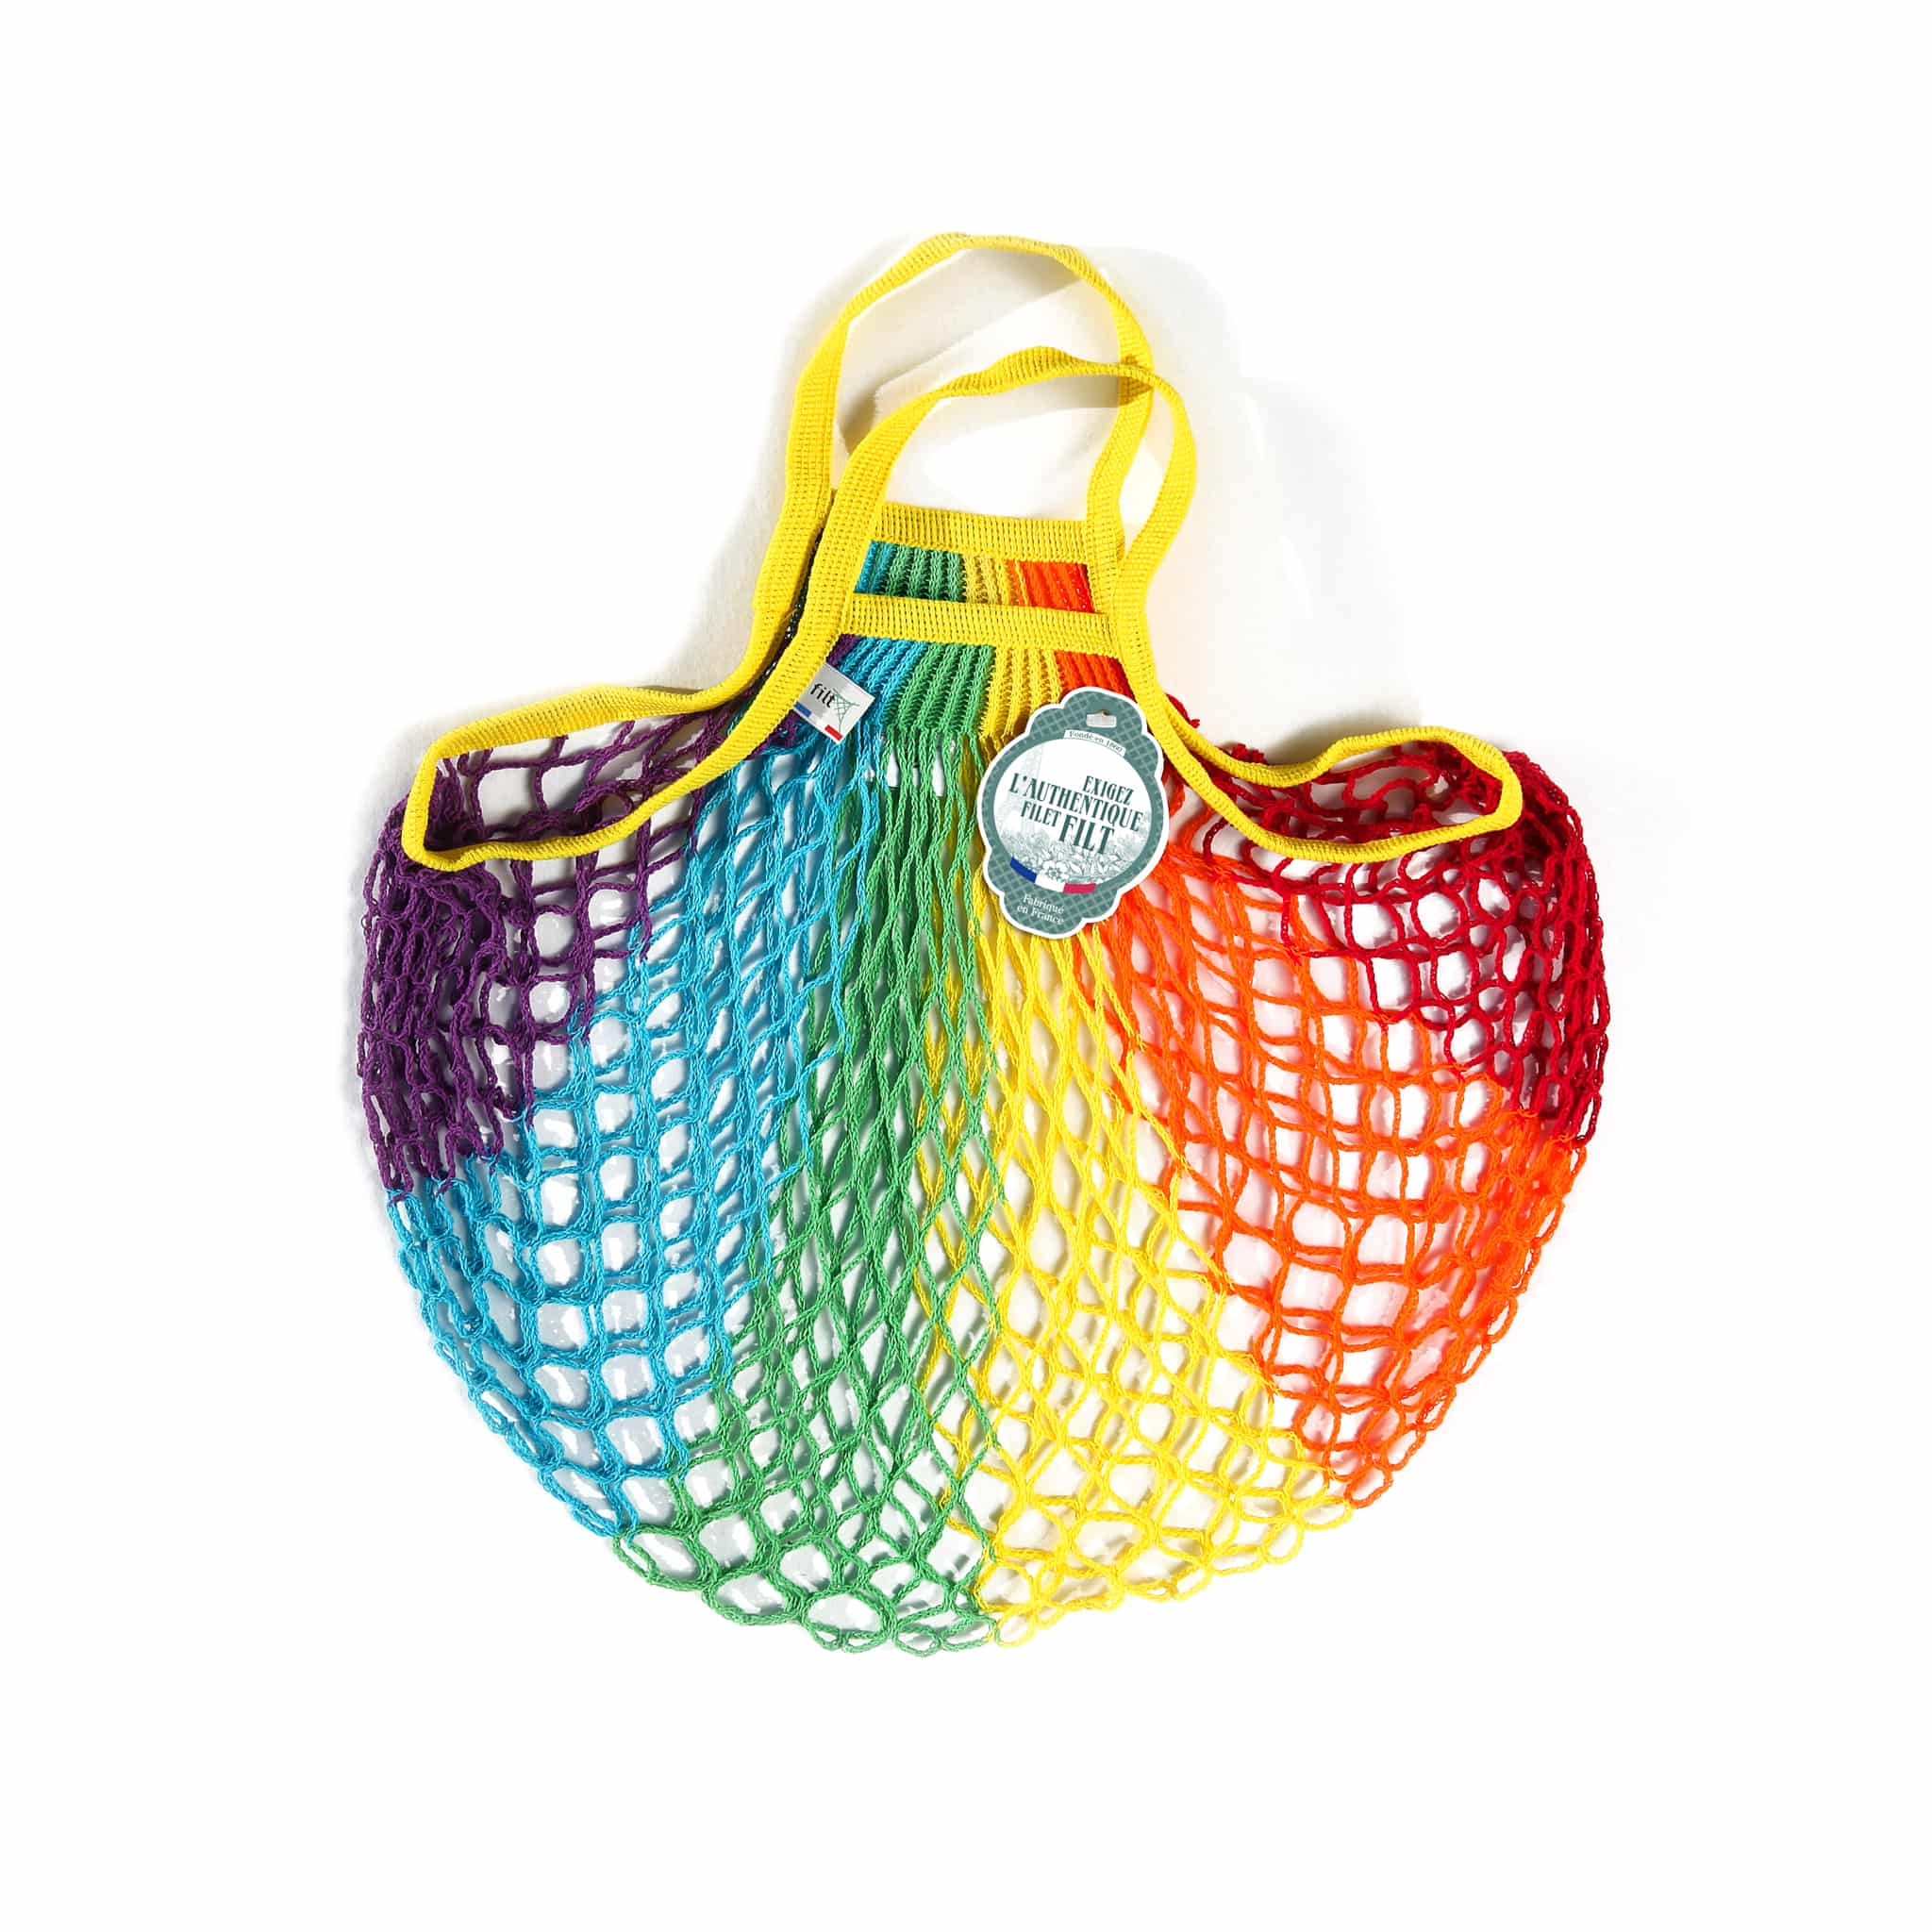 filt rainbow bag on white background